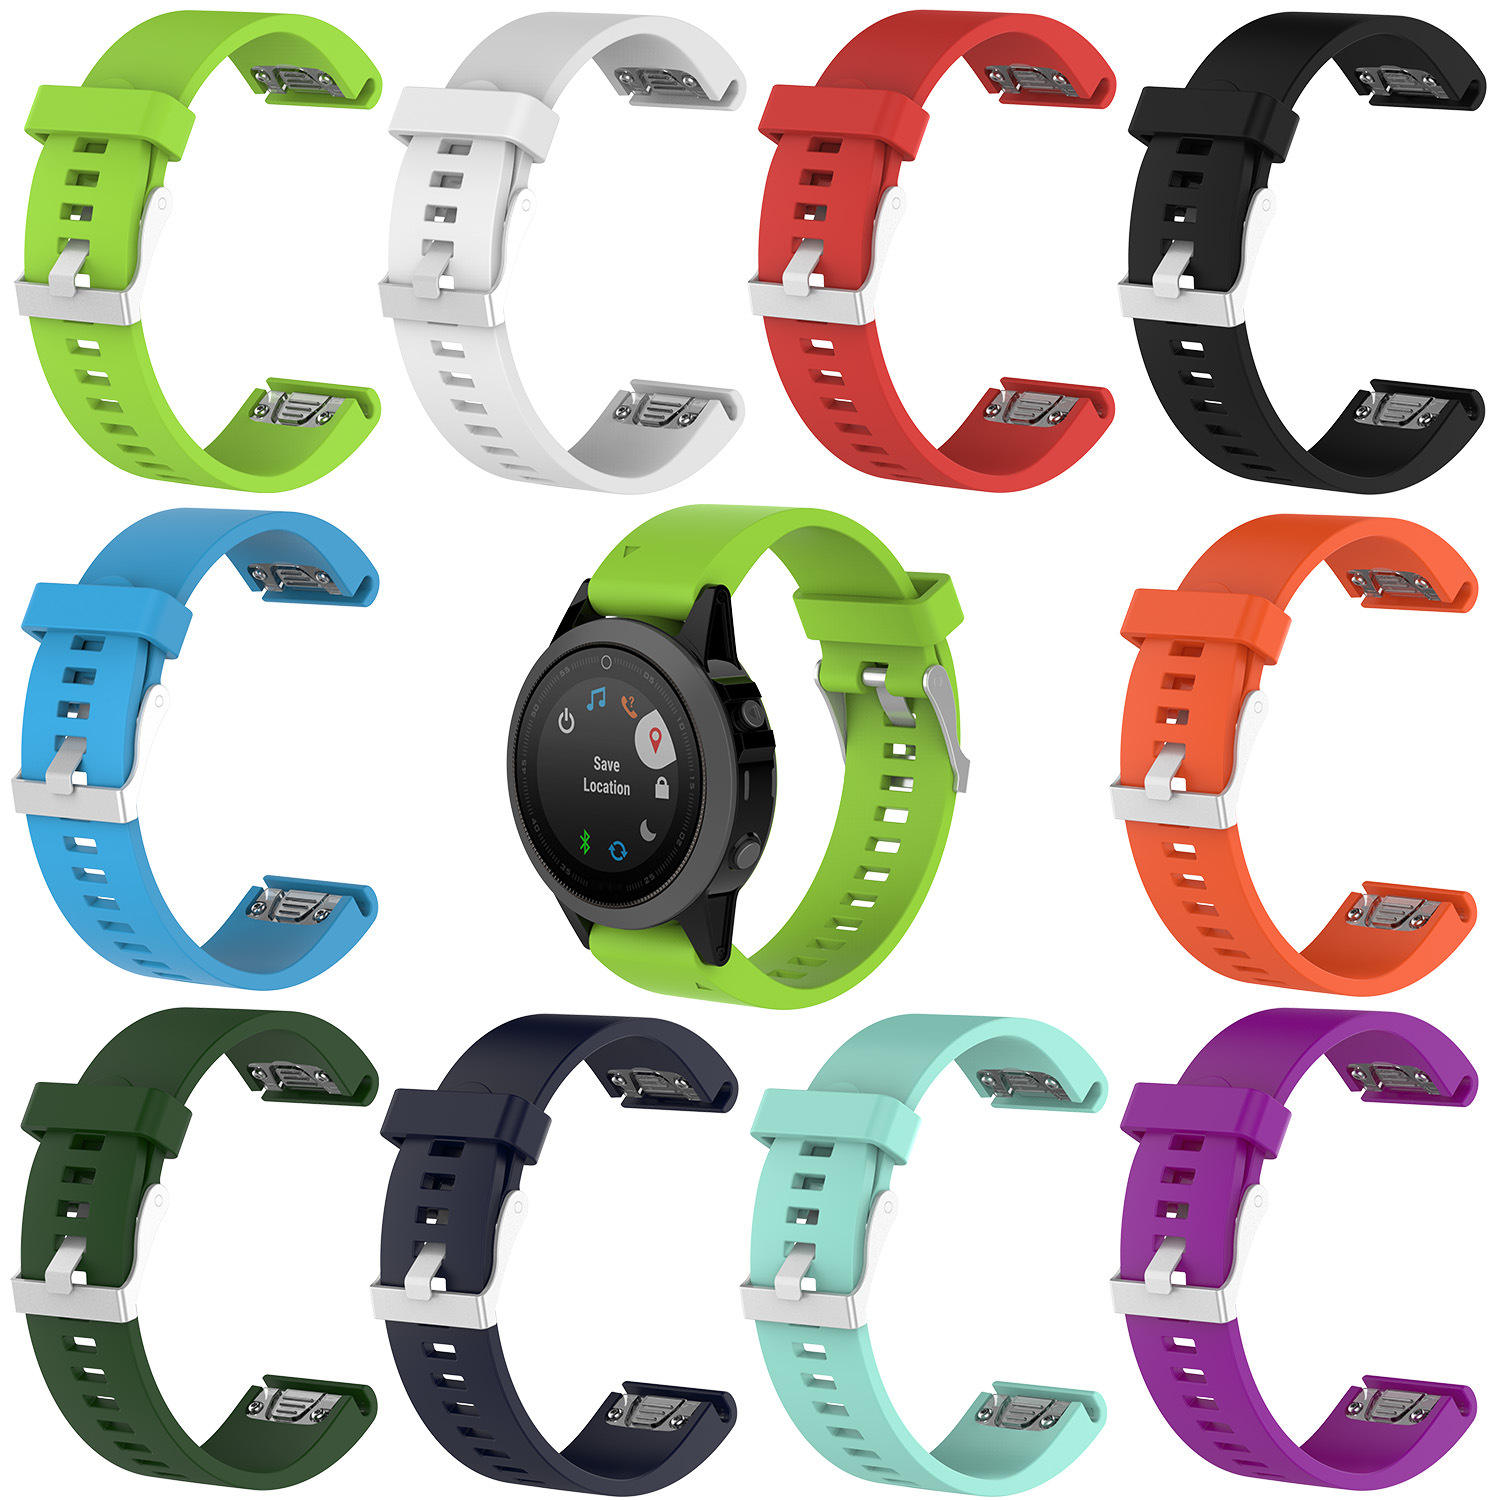 Watches Straps Silicone 20mm Quick Release Smooth Soft Silicone Sport Replacement Rubber Strap Watch For Garmin Fenix 5S 5S Plus 6